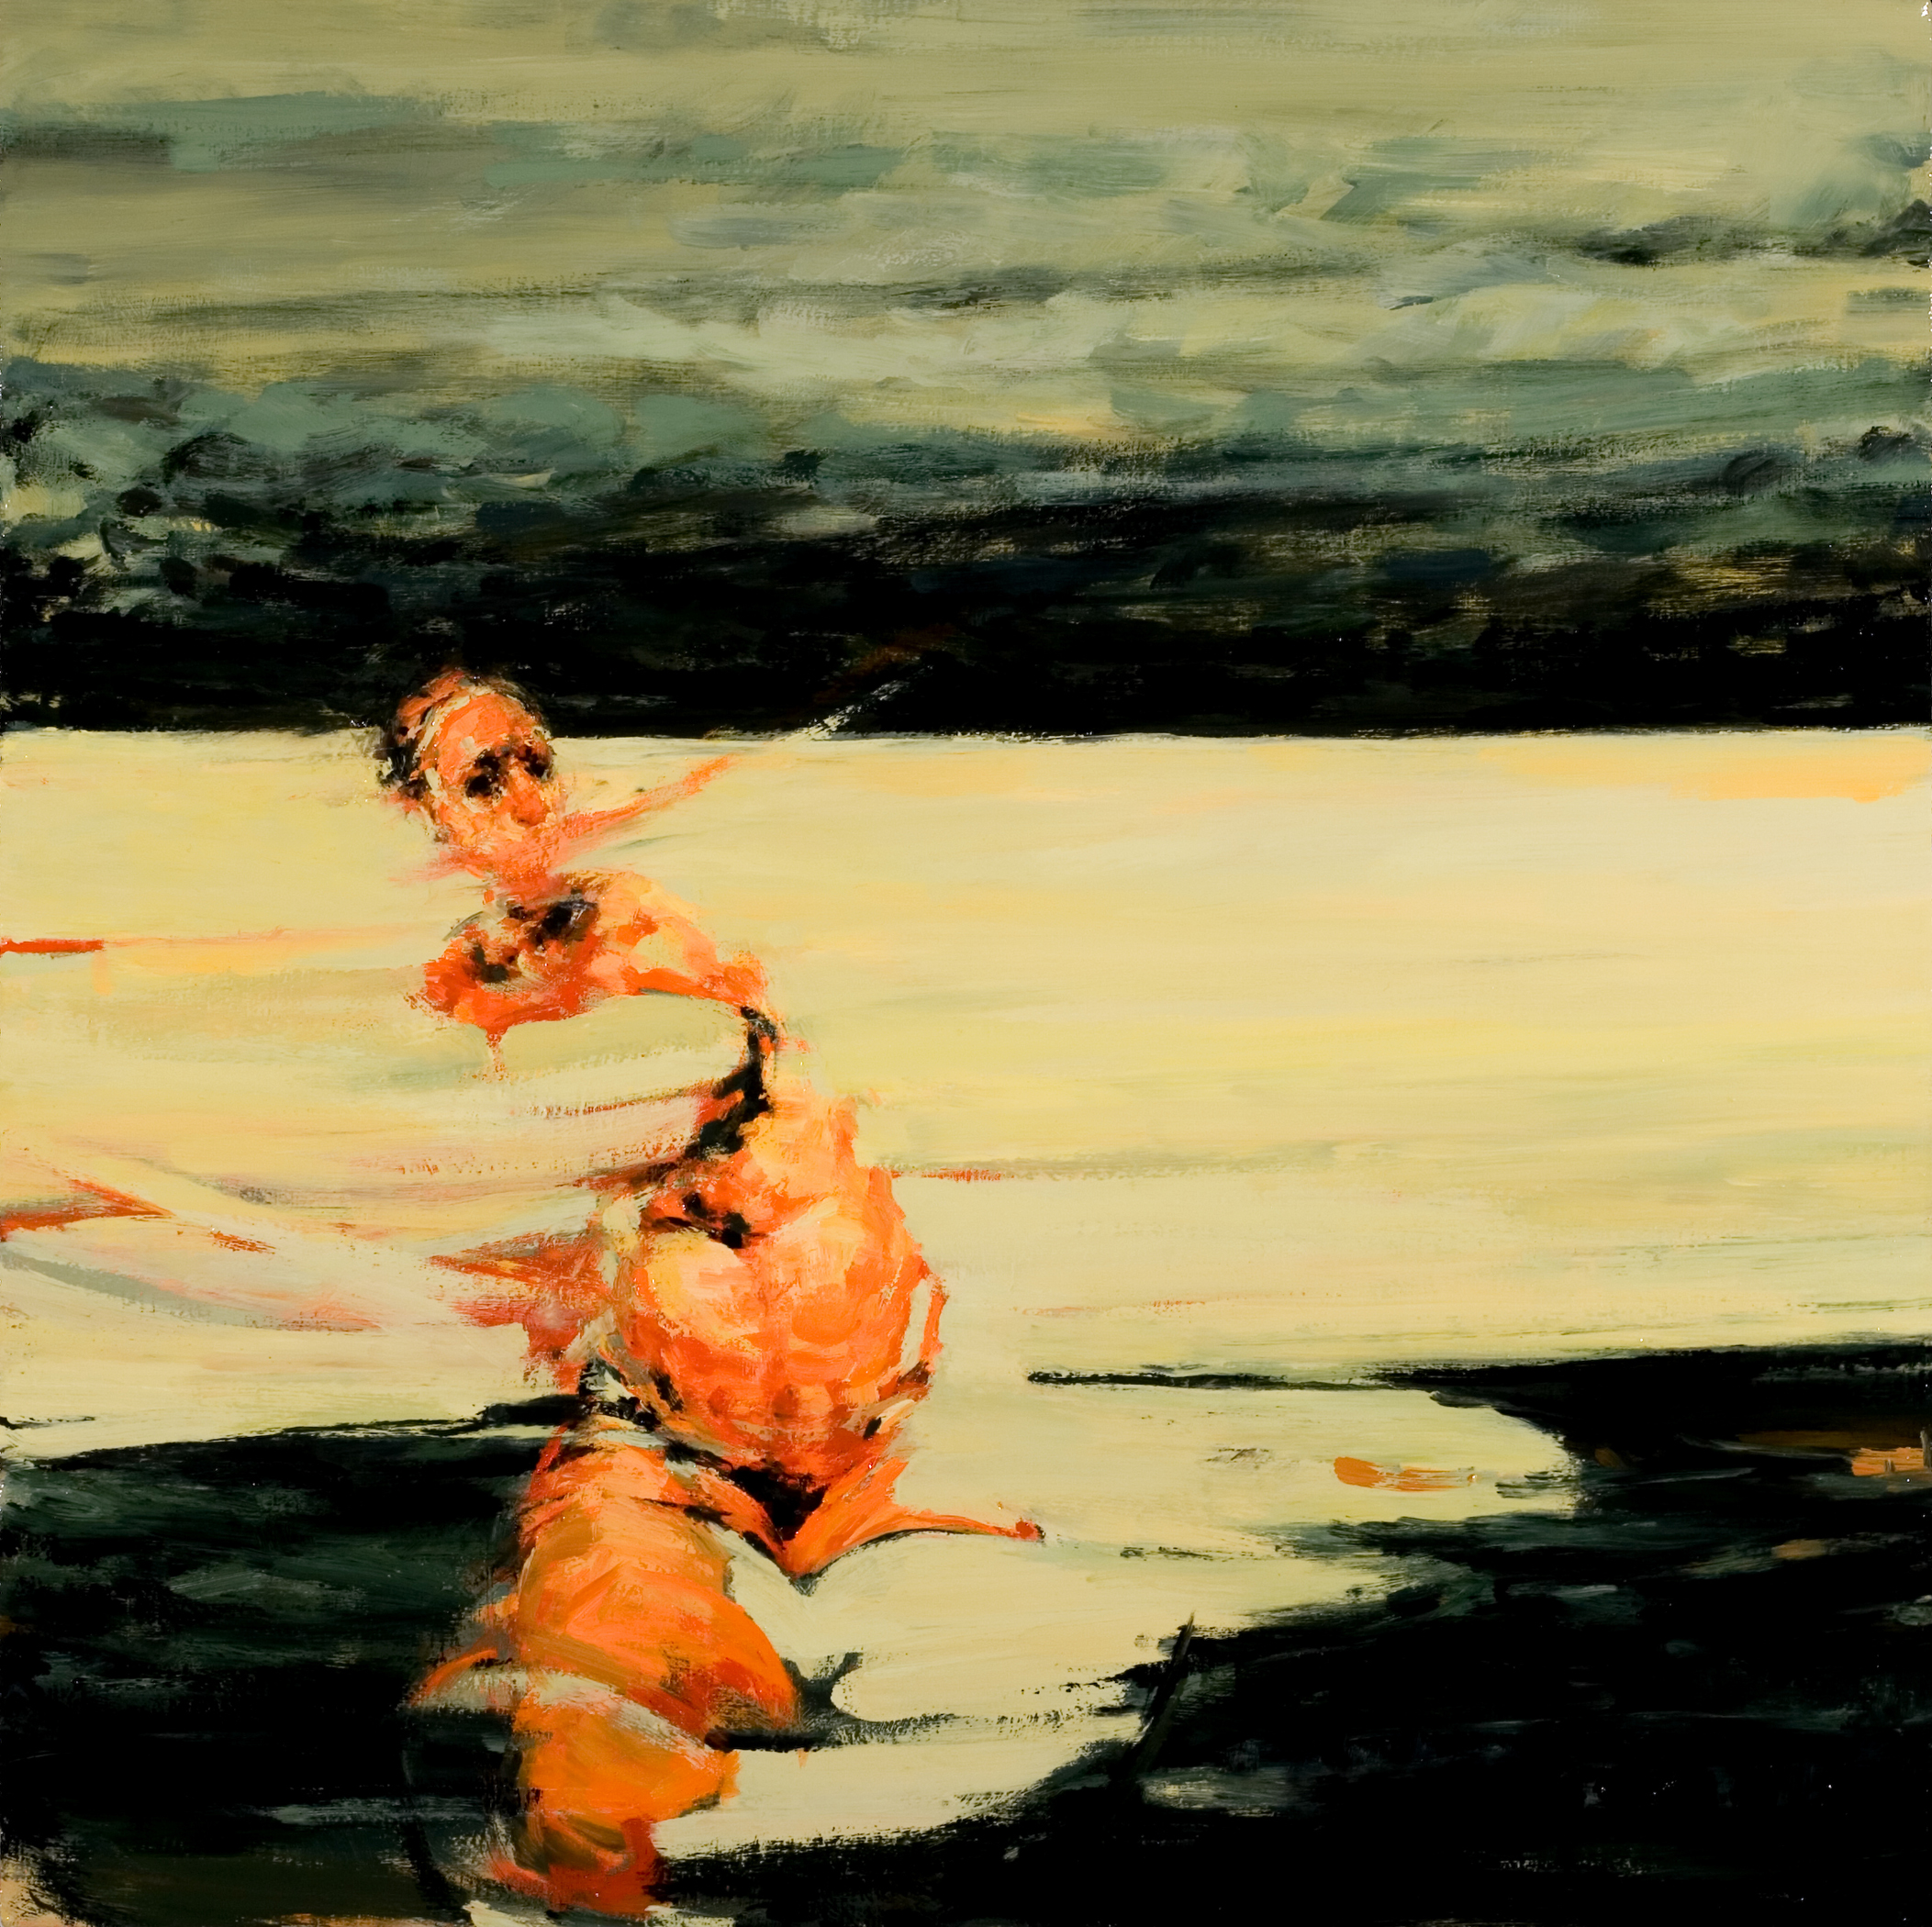 "Tug-o-war, oil on canvas, 32"" x 32"" x 2"", 2009 (SVA residency)"